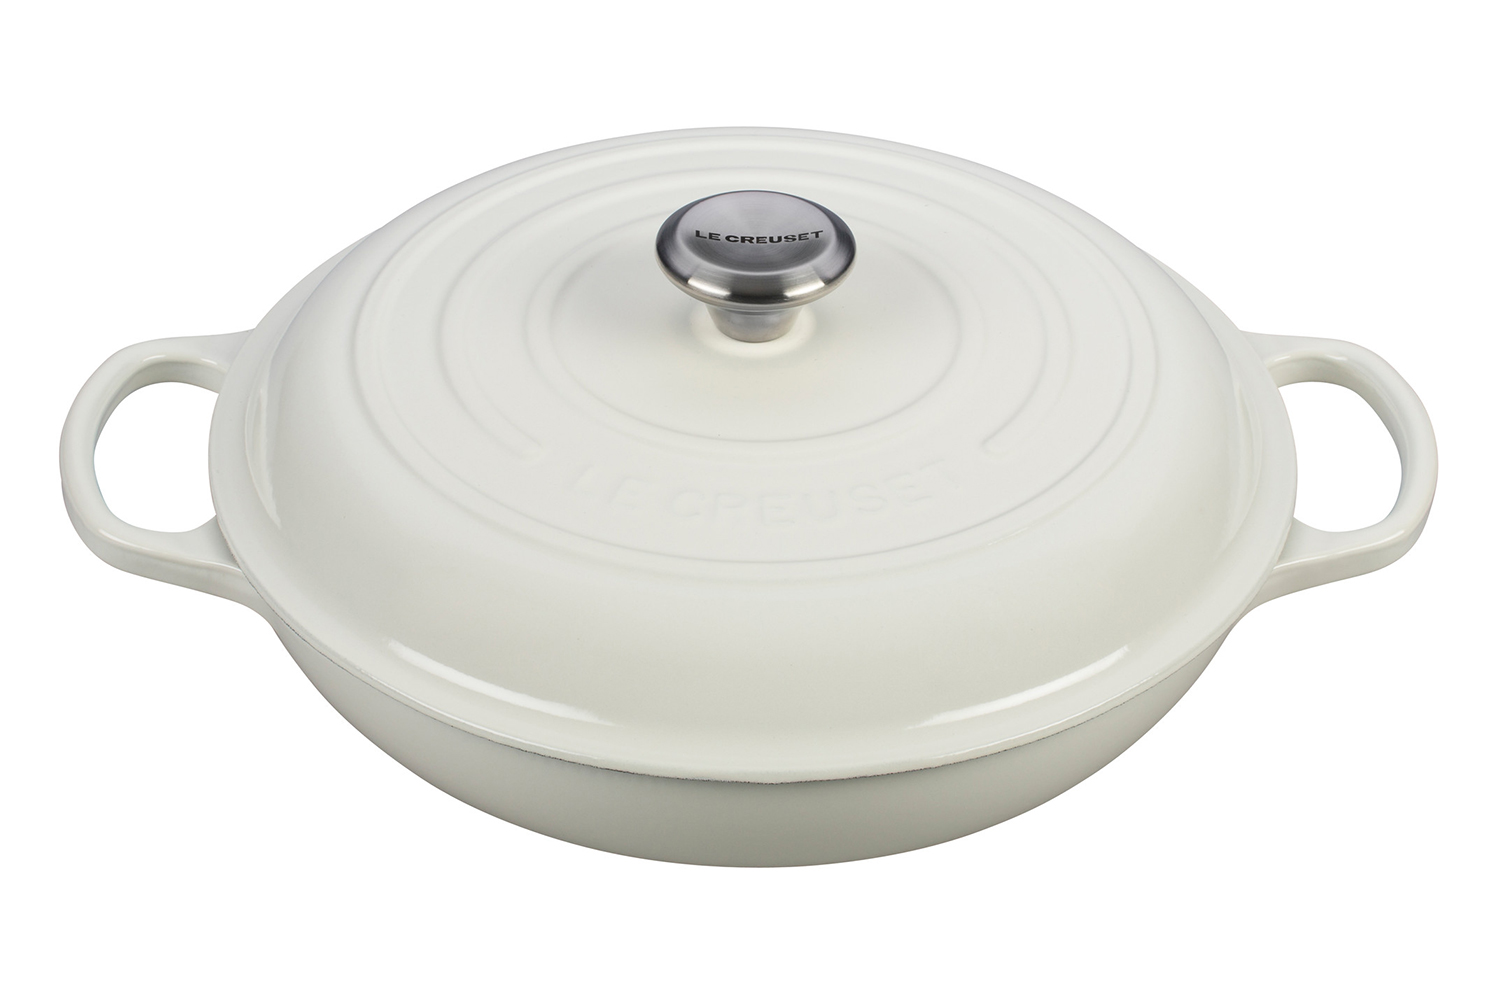 Le Creuset Signature Cast Iron 3 1 2 Qt Braiser White